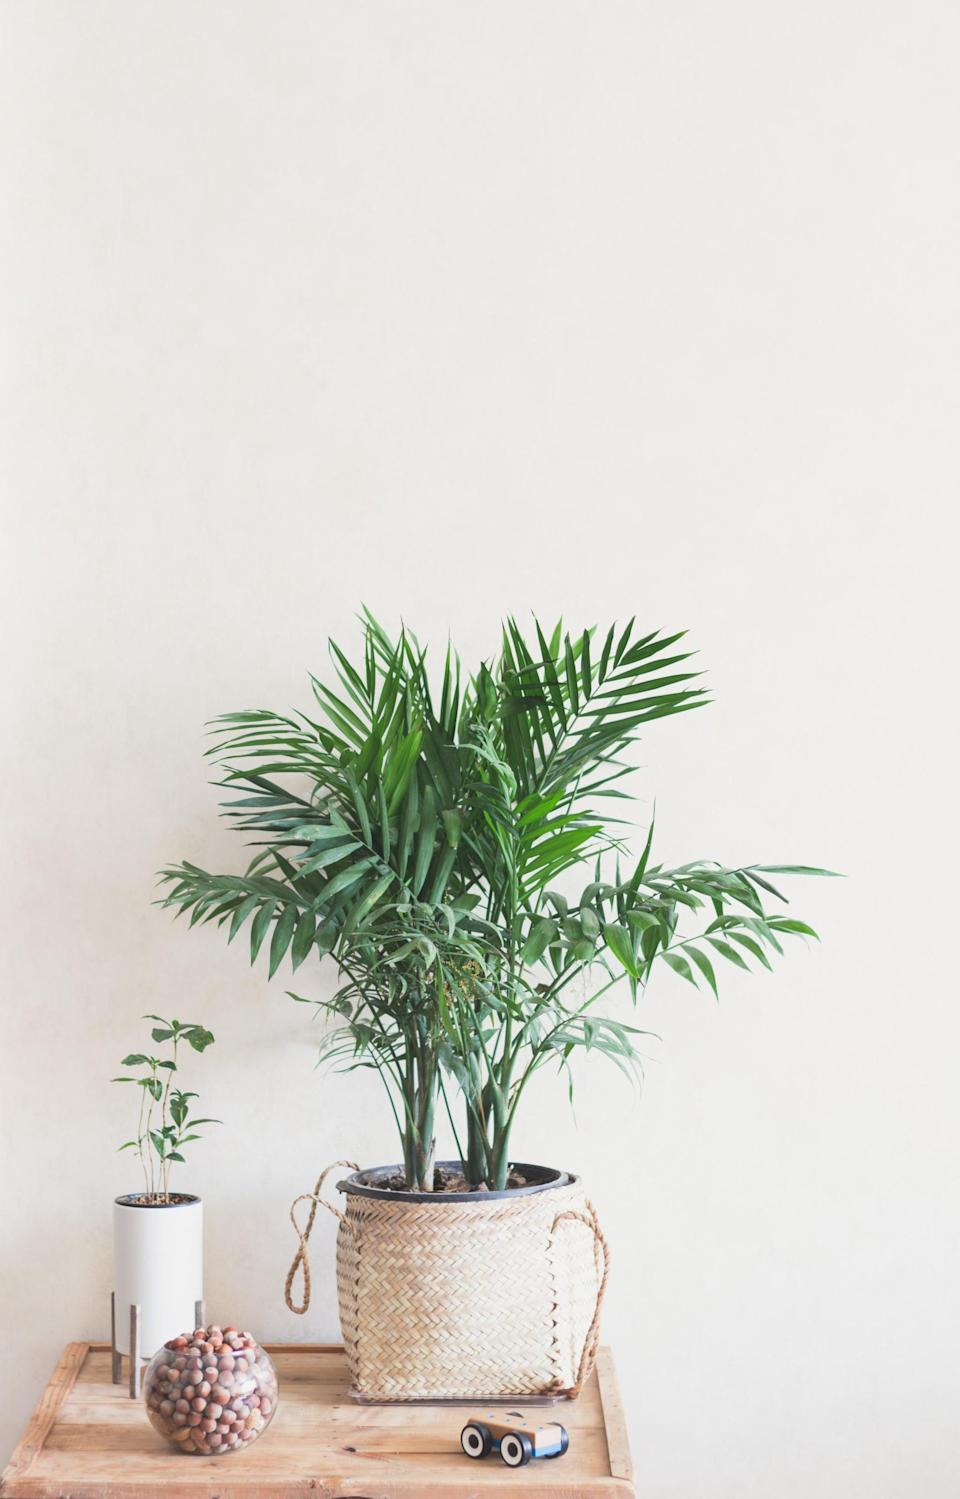 <p>This tree is serious business - it's one of the best air-purifying plants! You can expect it to keep your home's air cool, clean, and pleasantly humid.</p>